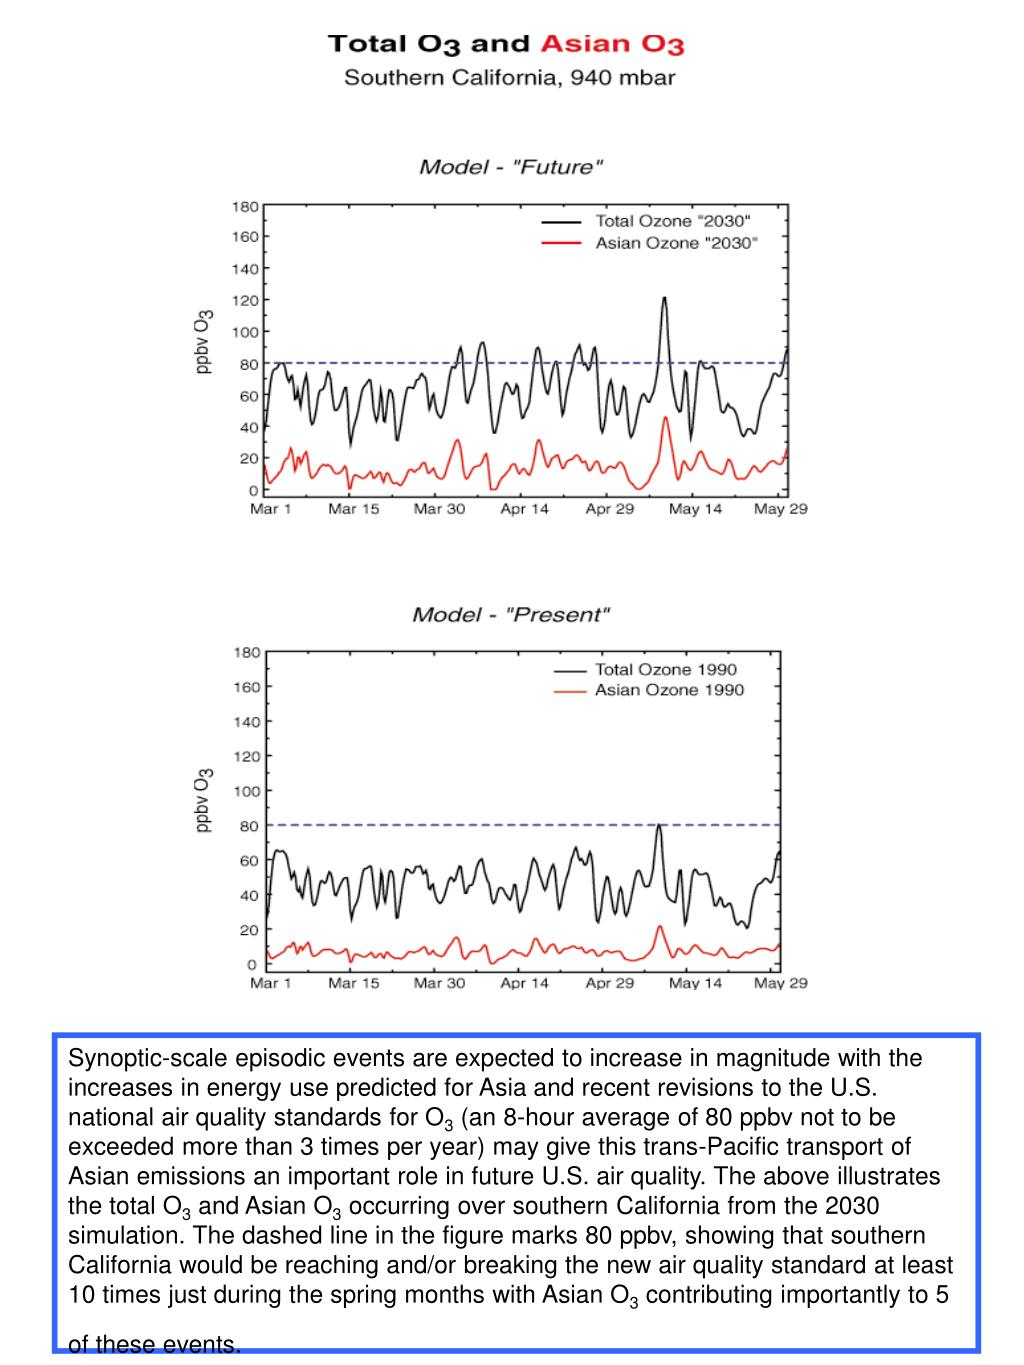 Synoptic-scale episodic events are expected to increase in magnitude with the increases in energy use predicted for Asia and recent revisions to the U.S. national air quality standards for O